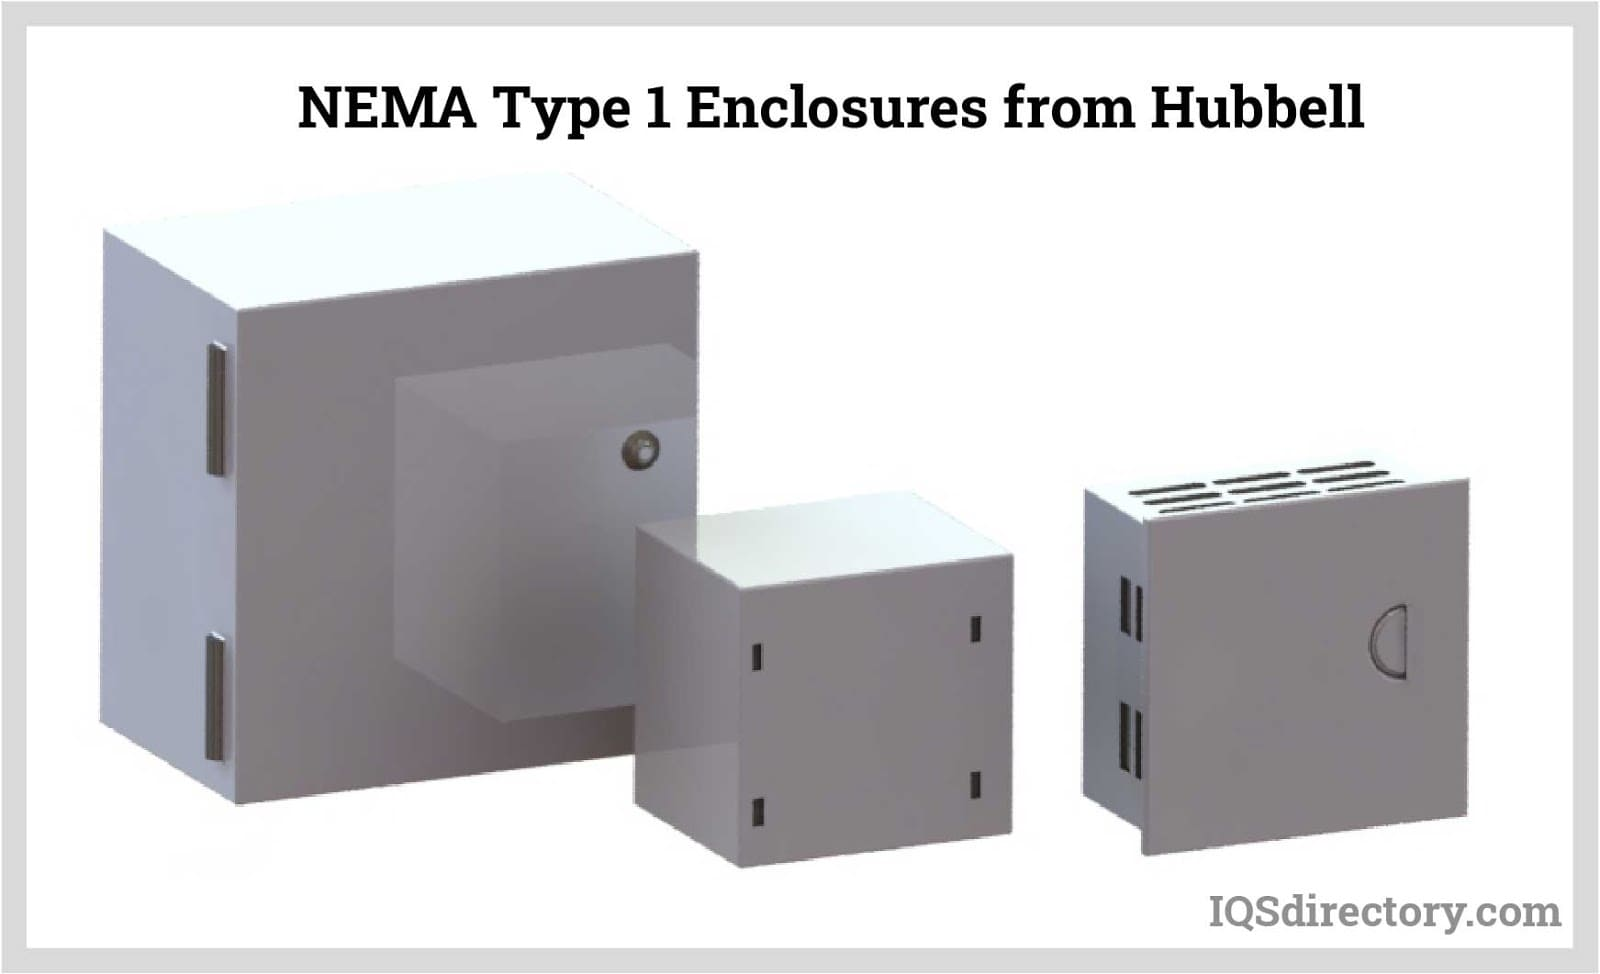 NEMA Type 1 Enclosures from Hubbell